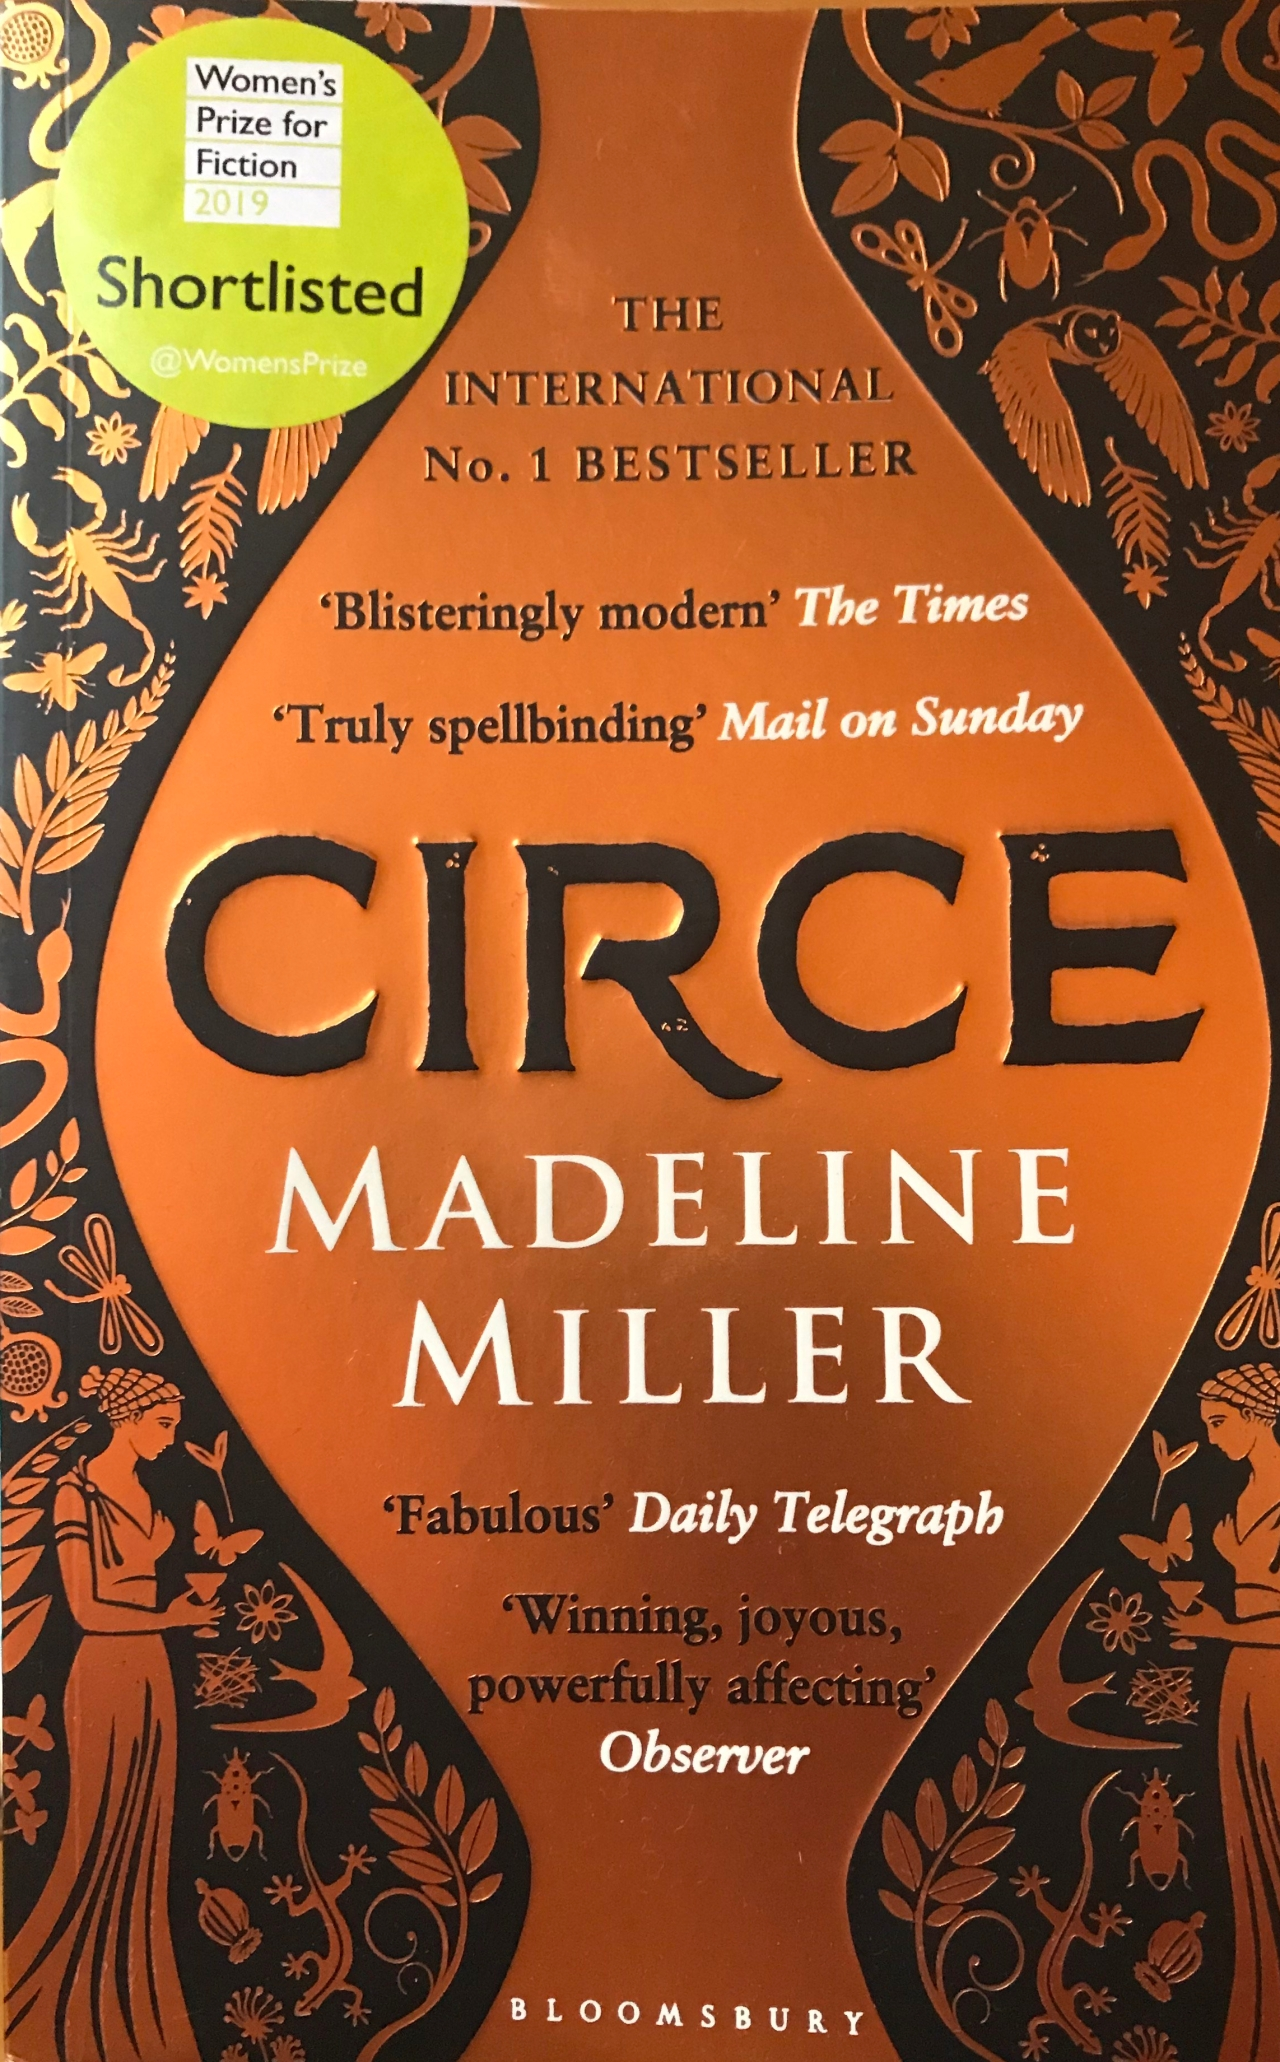 Book of the Month: Circe